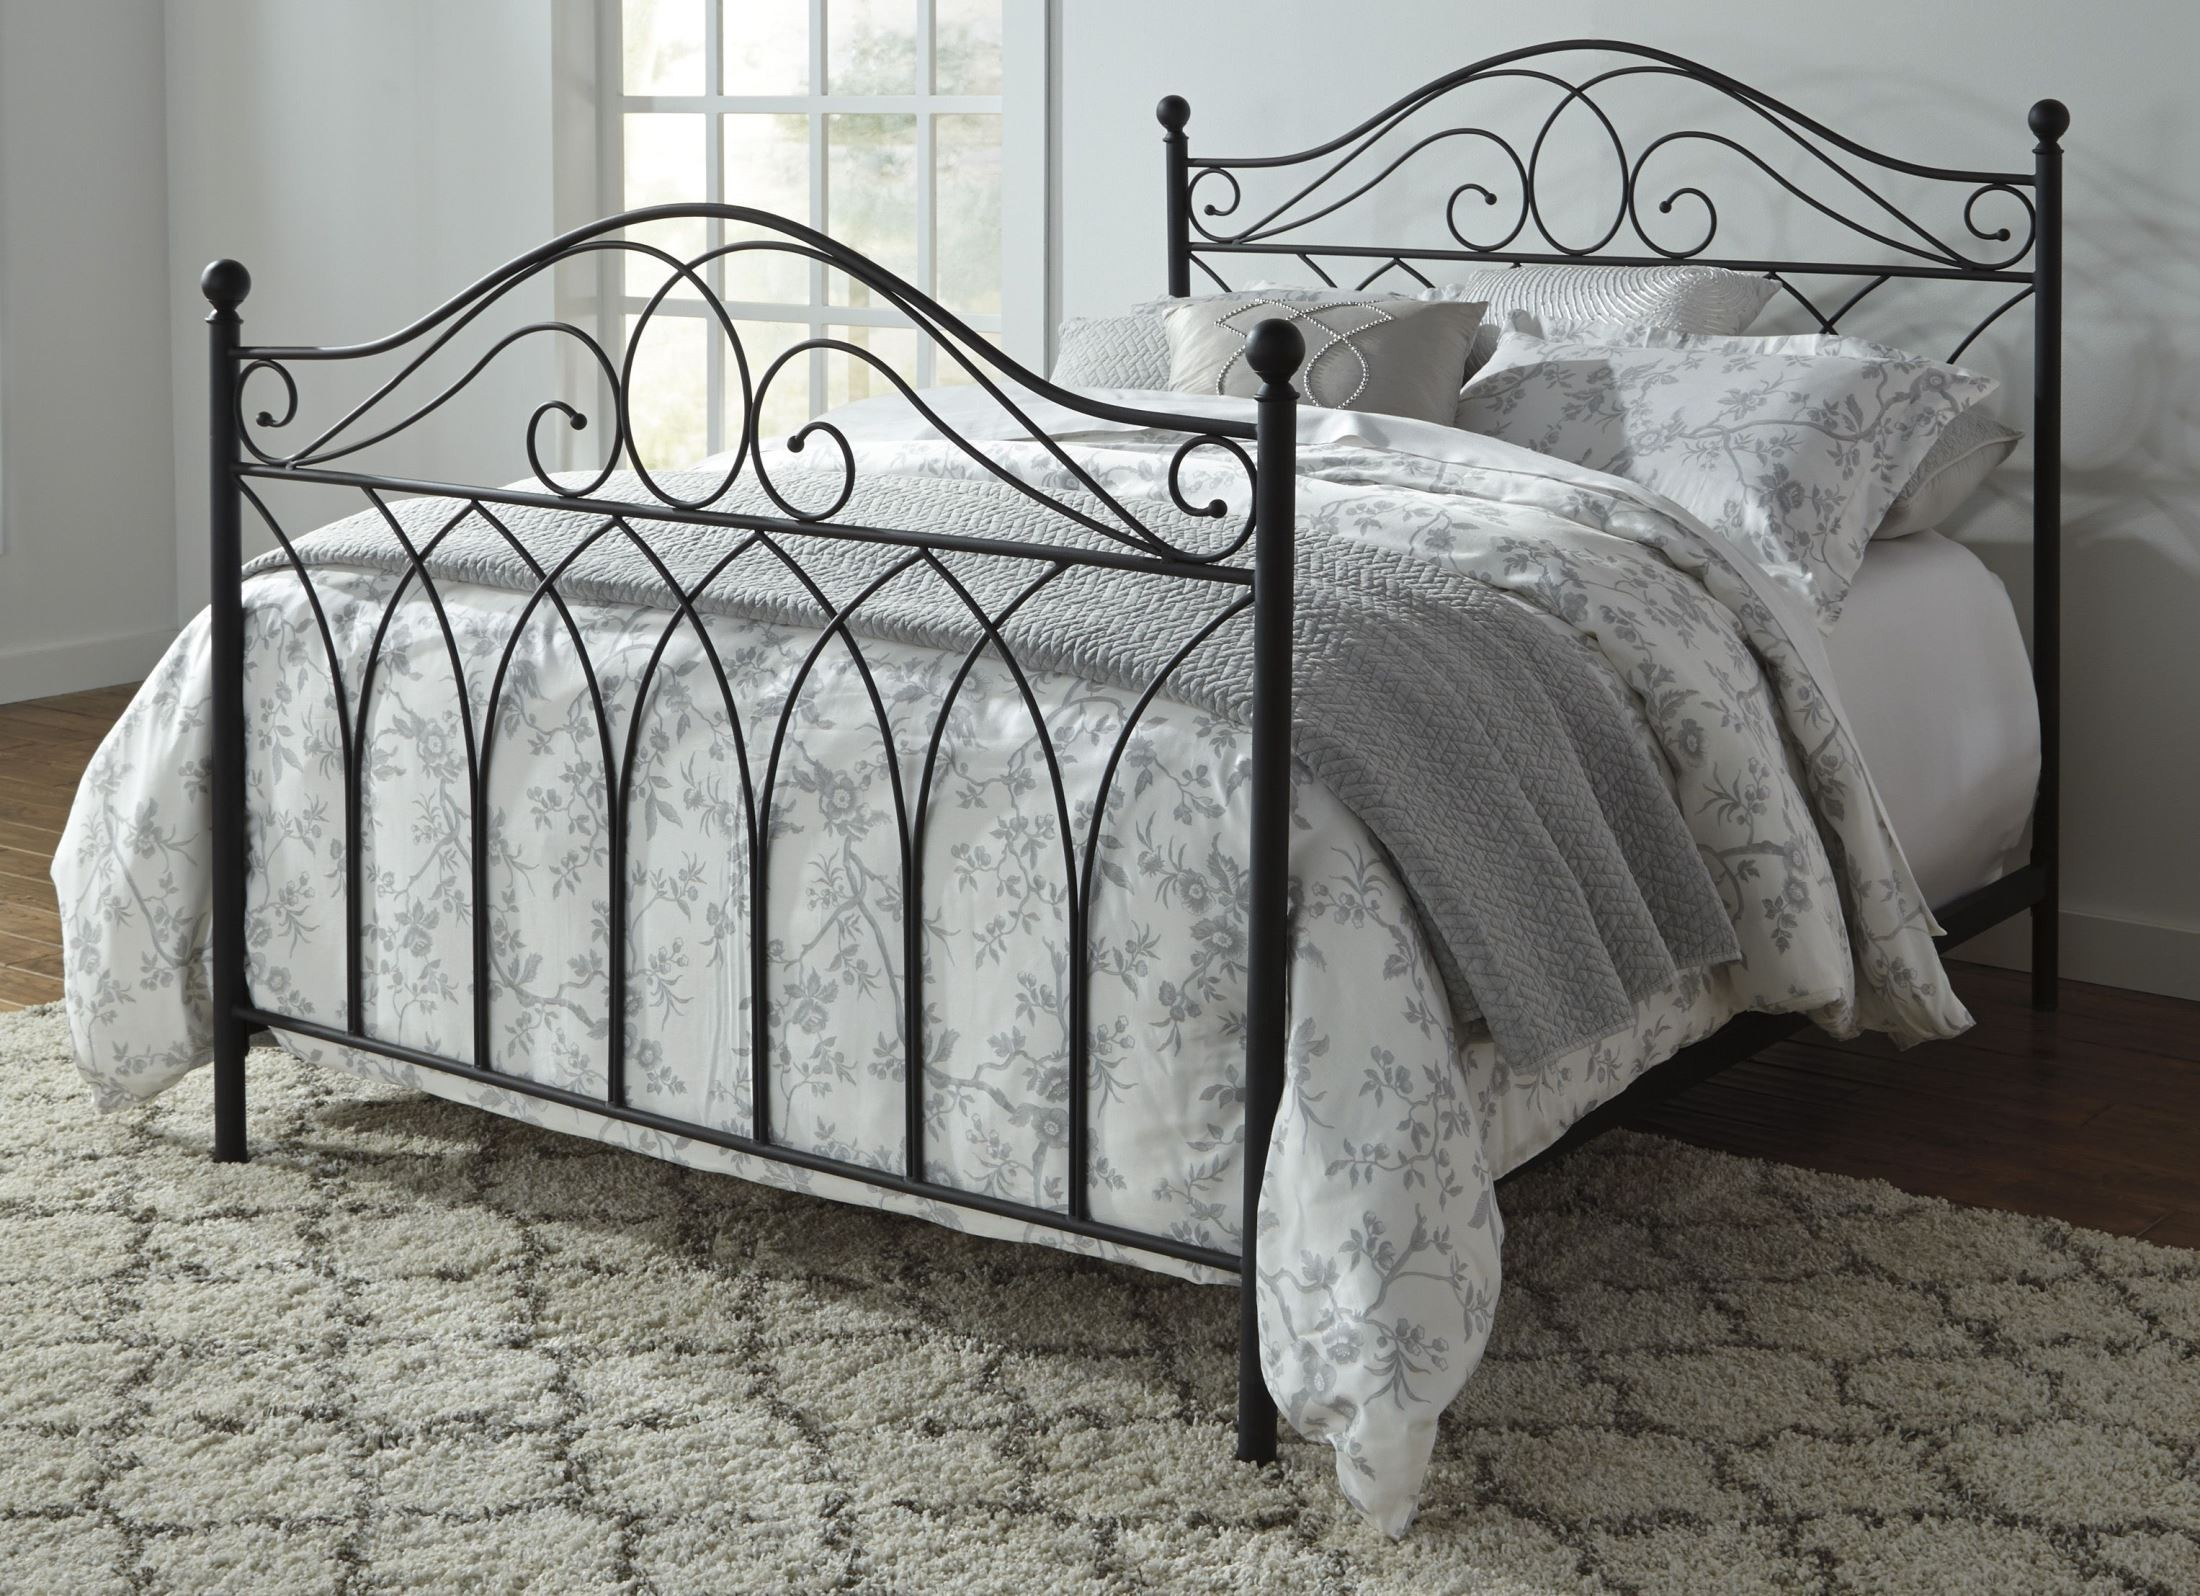 Queen Beds Metal: Nashburg Black Queen Poster Metal Bed, B280-481, Ashley